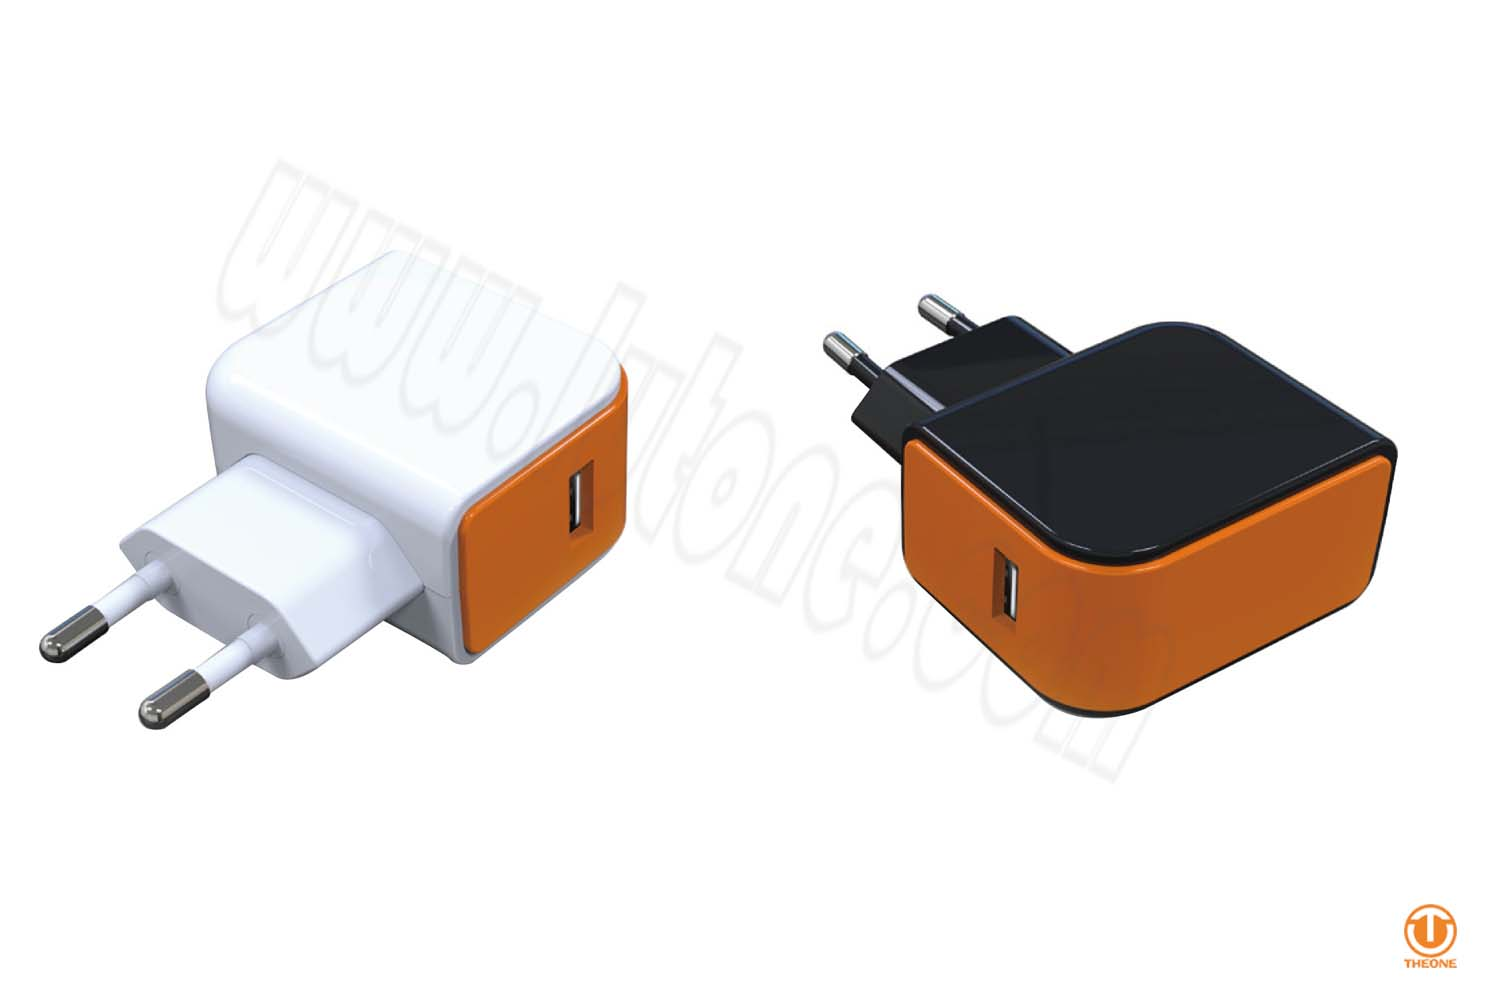 tc02b2-3 usb wall charger